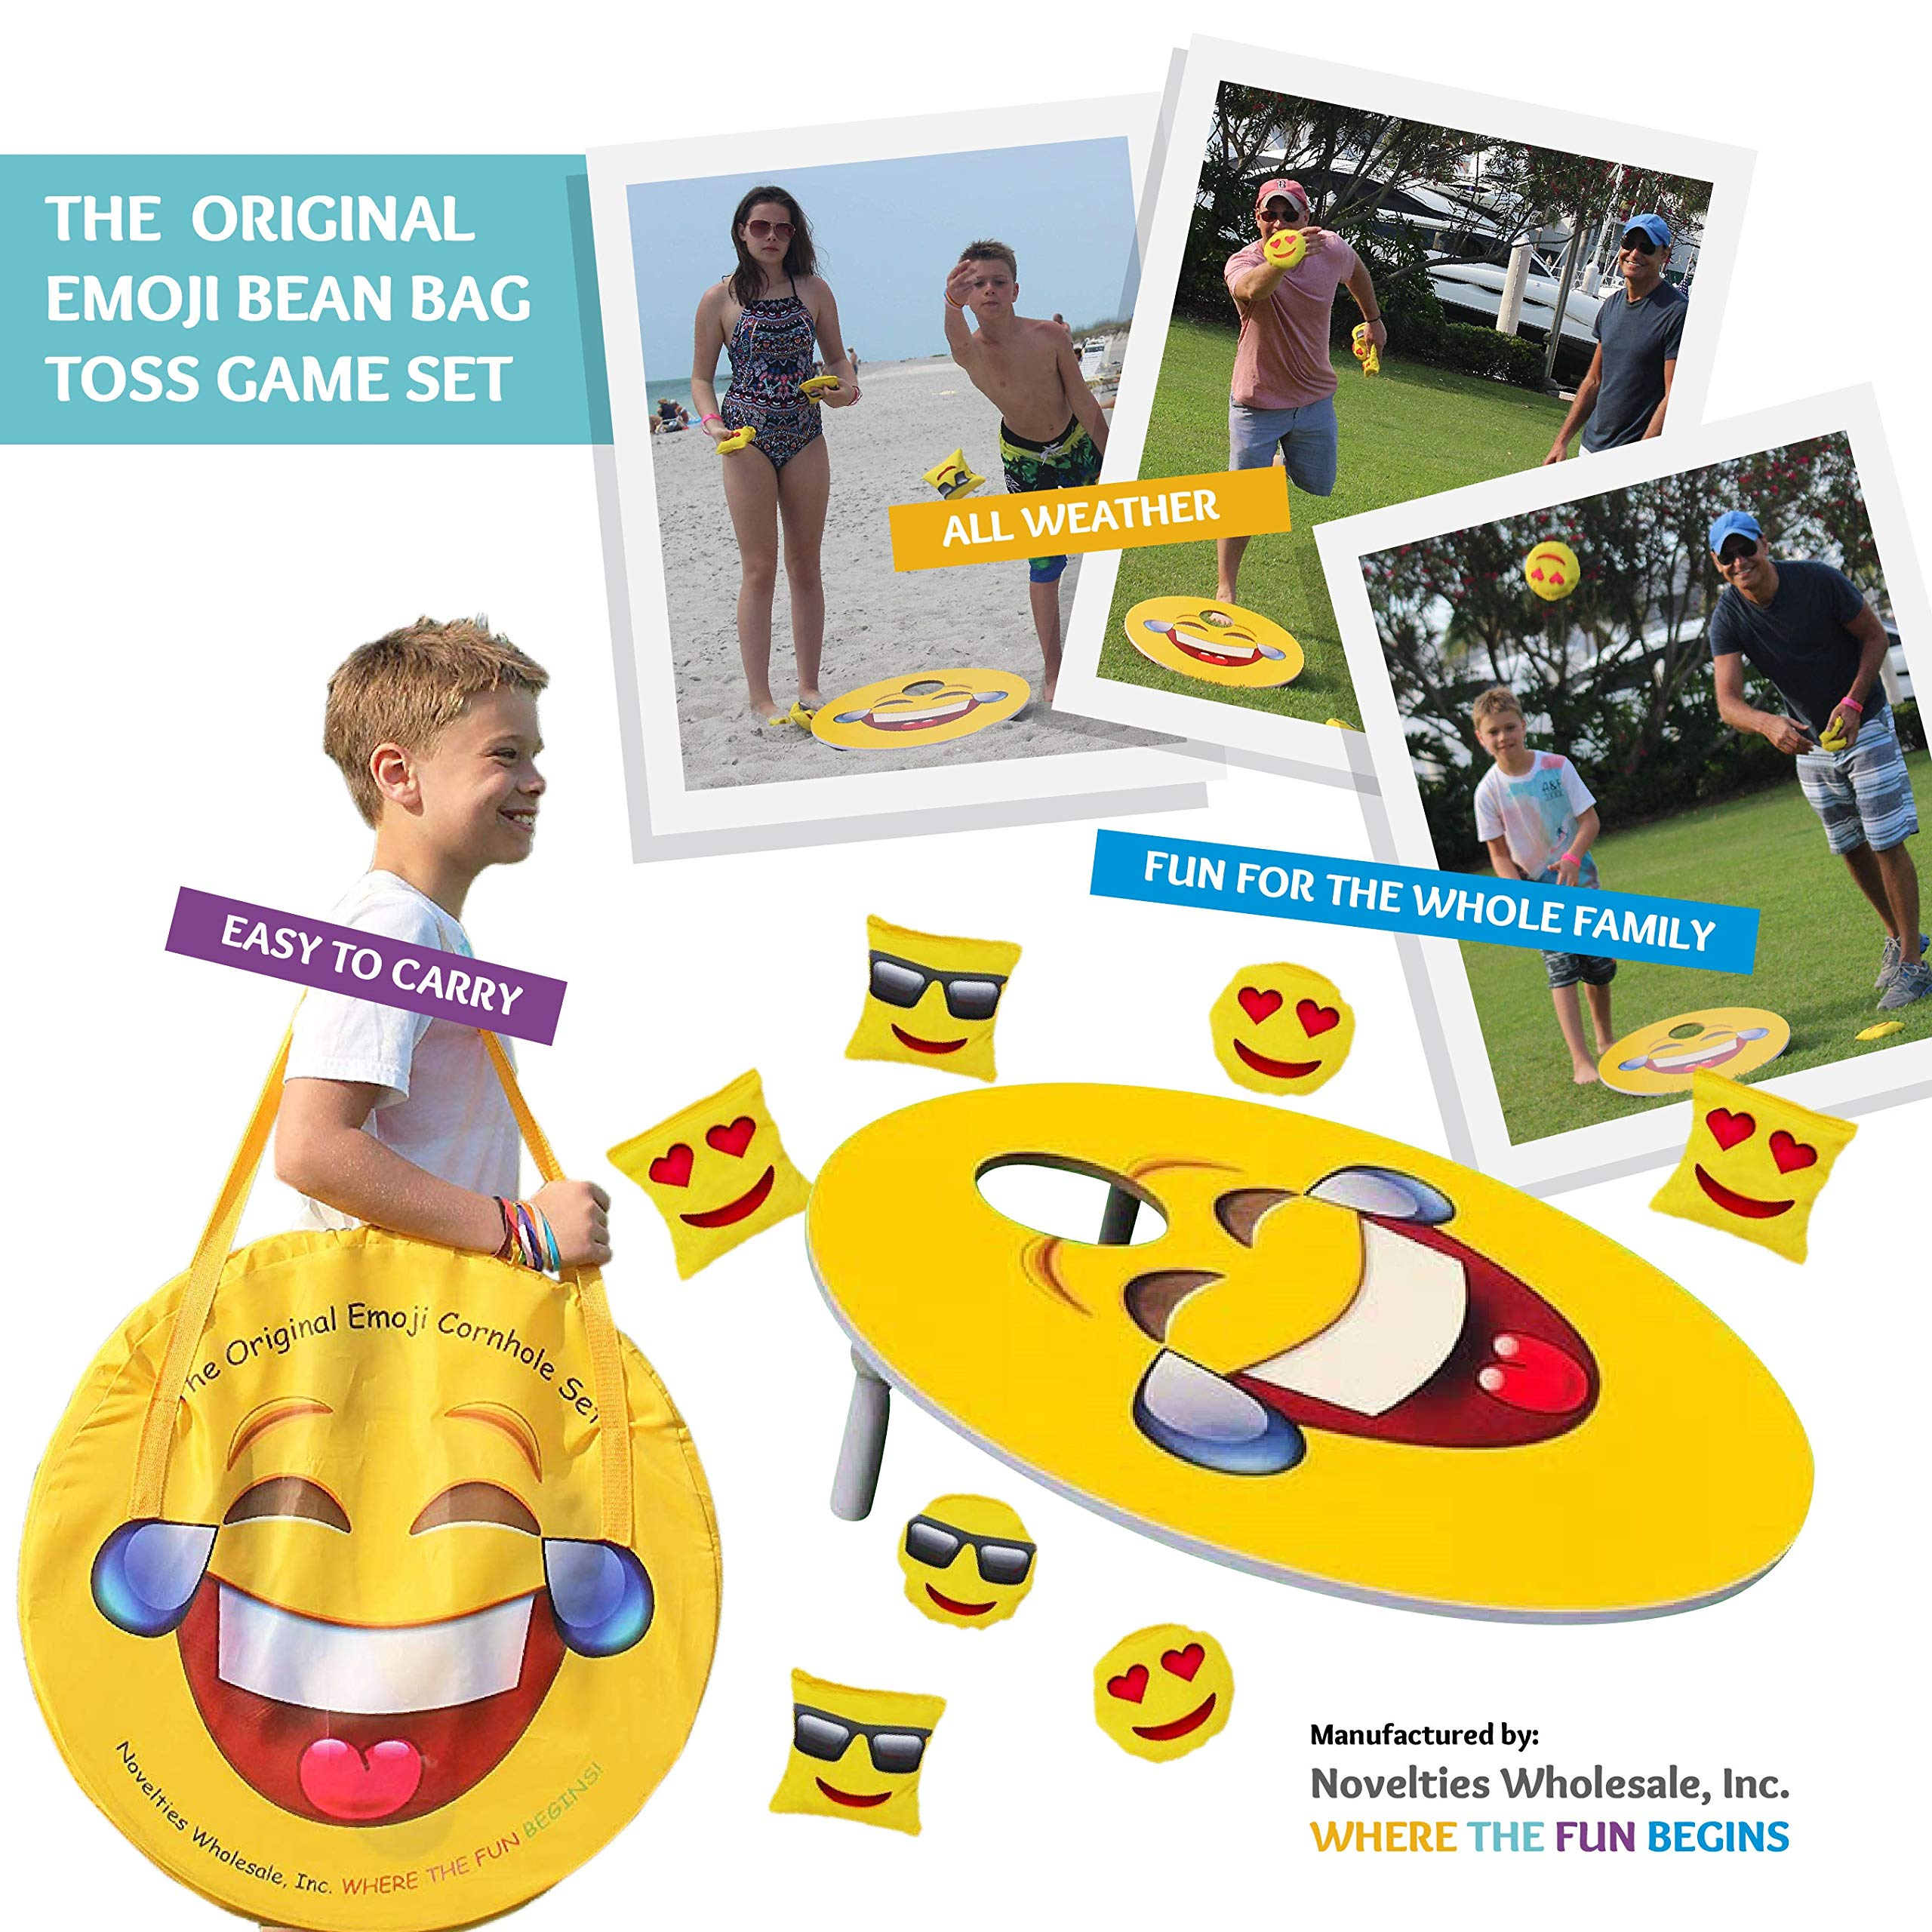 TheGag Cornhole for Kids Outdoor-Bean Bag Toss Set for Kids and Family Parties A Great Game for The Beach-Summer-Use Indoor or Outdoor